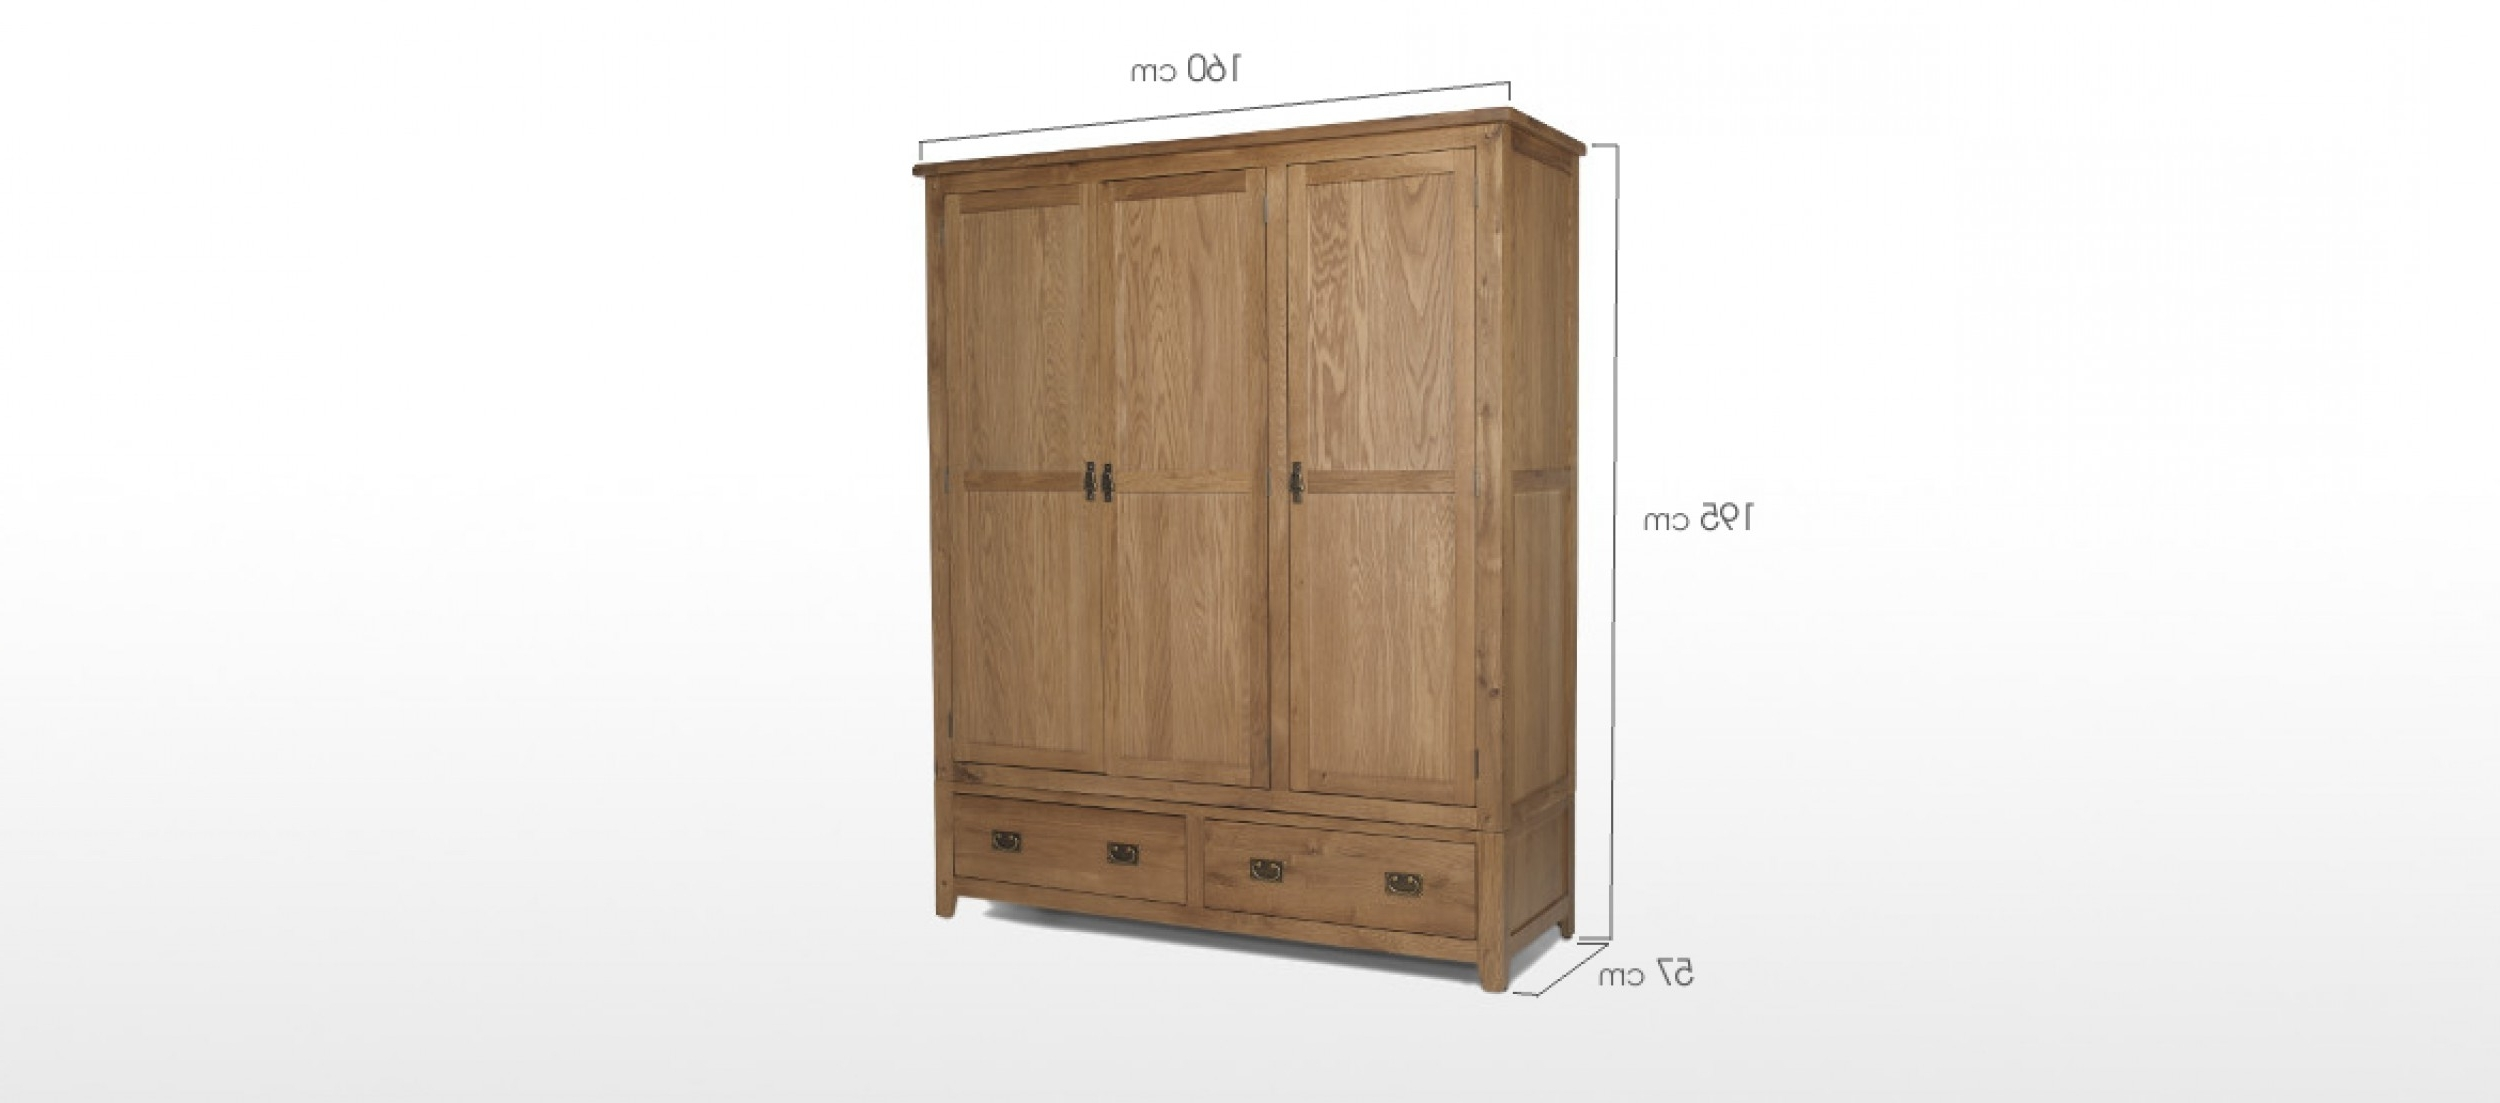 Narrow Wardrobe With Drawers Single Pine Tall Solid Wood This Is Within Newest Single Pine Wardrobes (View 11 of 15)